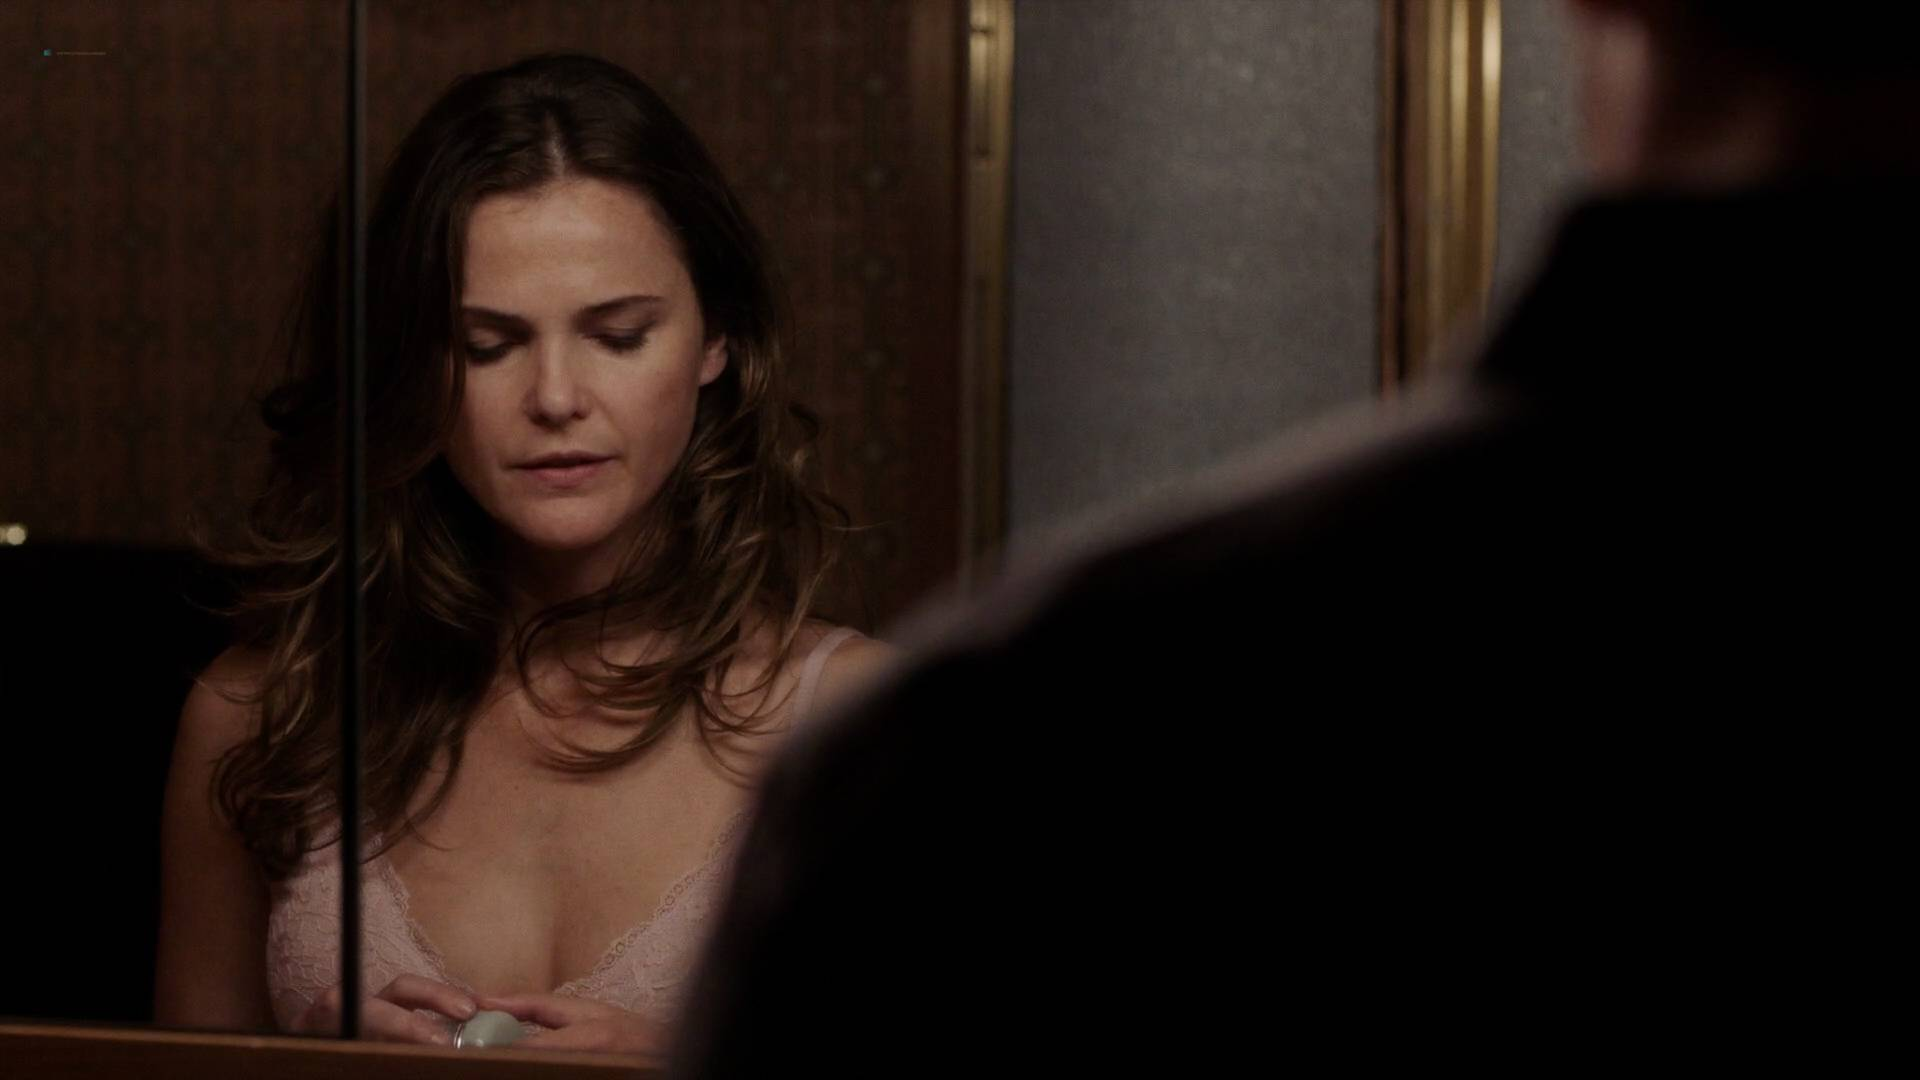 Keri-Russell-nude-butt-in-the-shower-The-Americans-2017-s5e2-HD720-1080p-00001.jpg